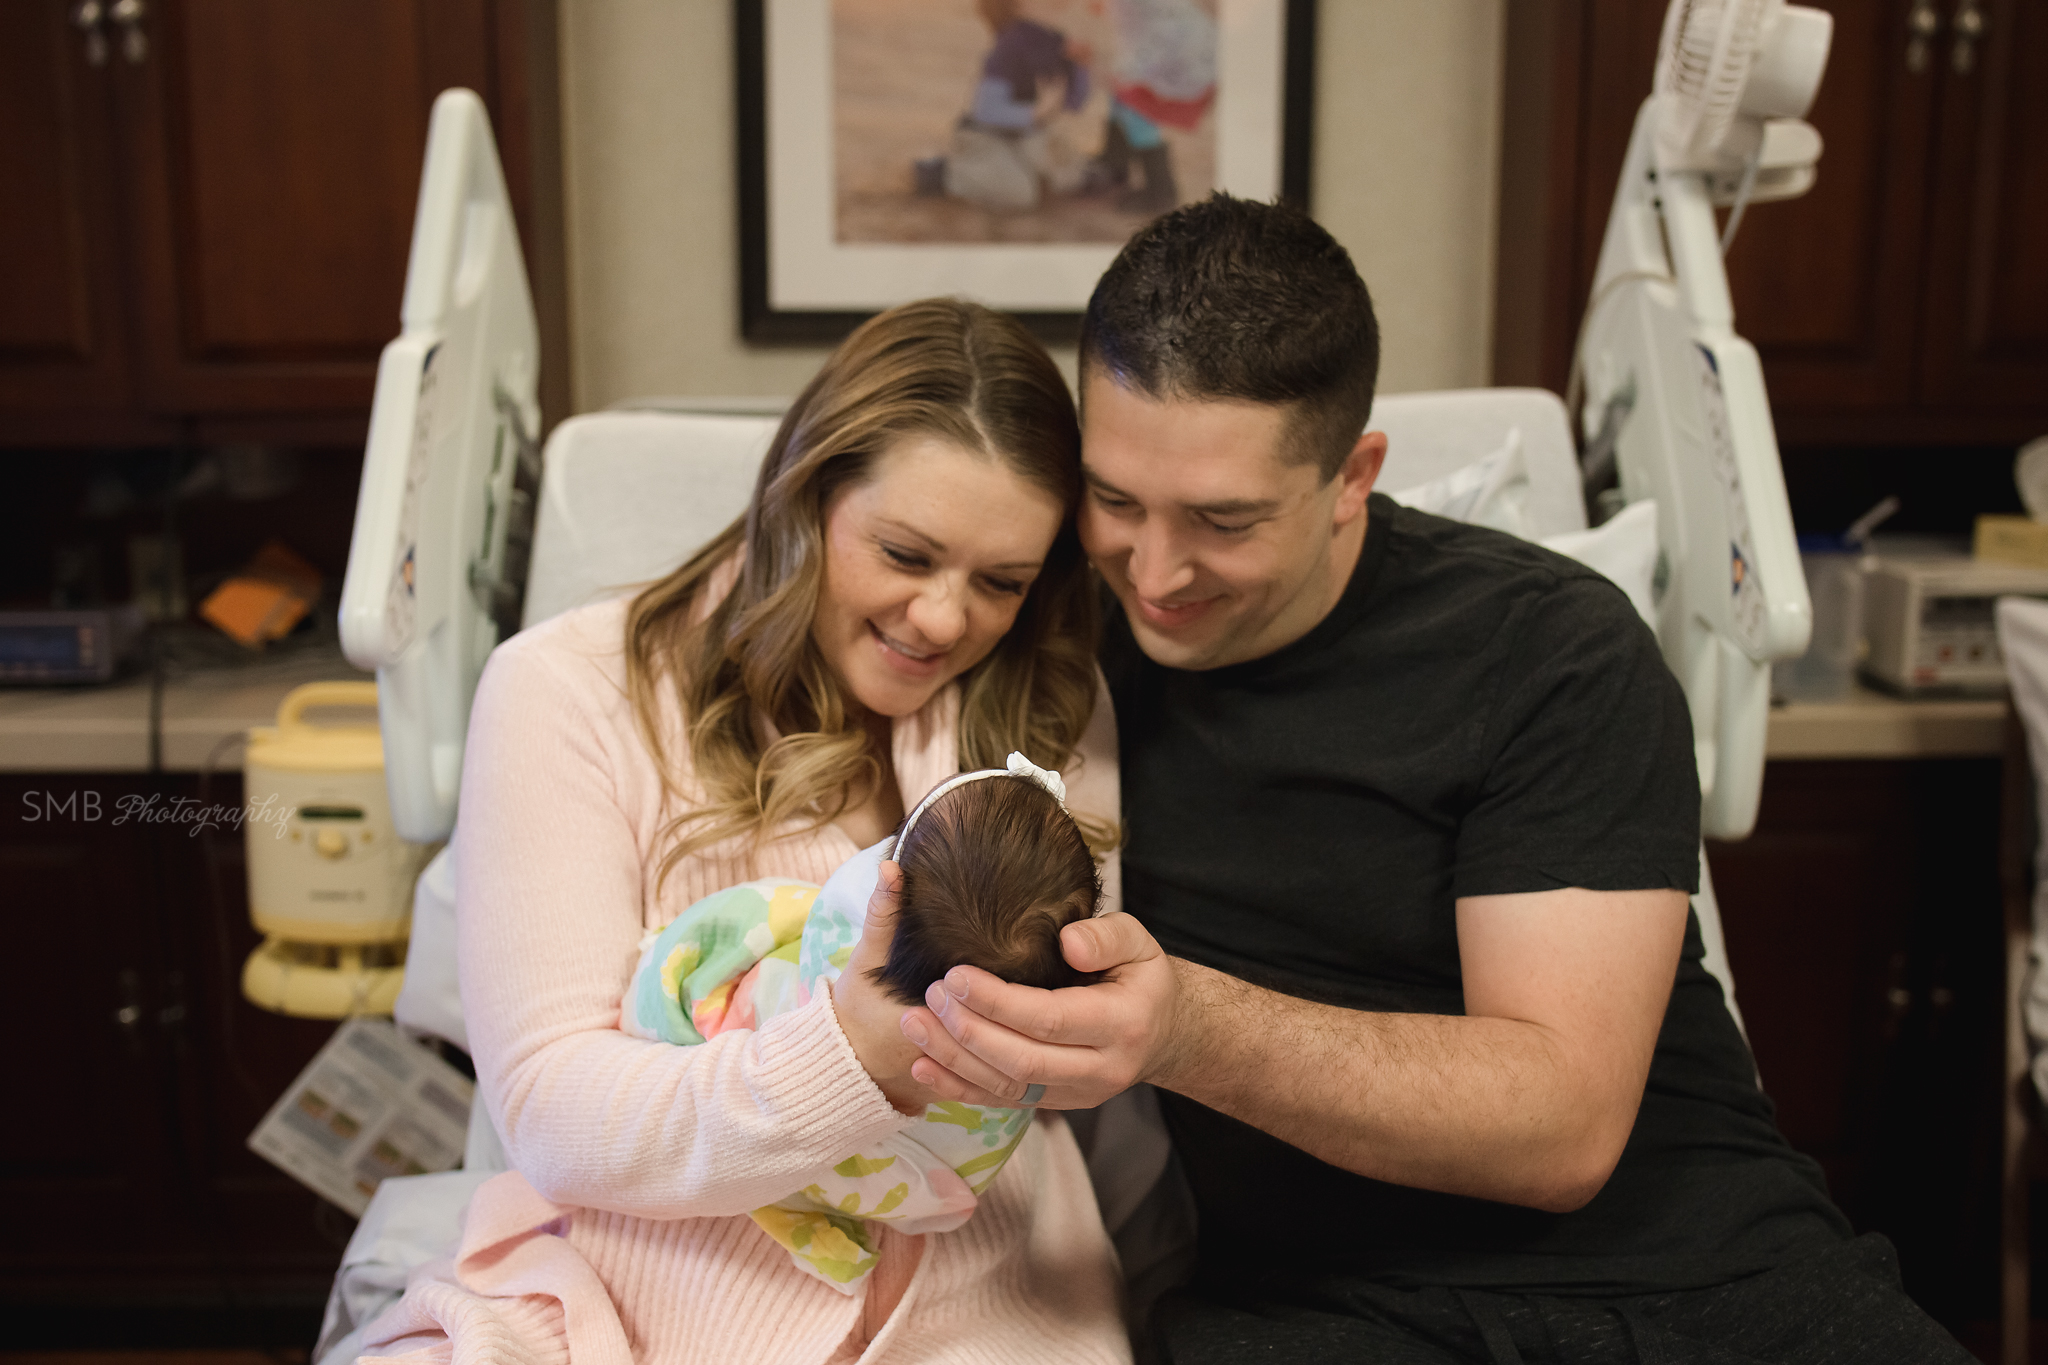 Mom and Dad holding newborn daughter in hospital